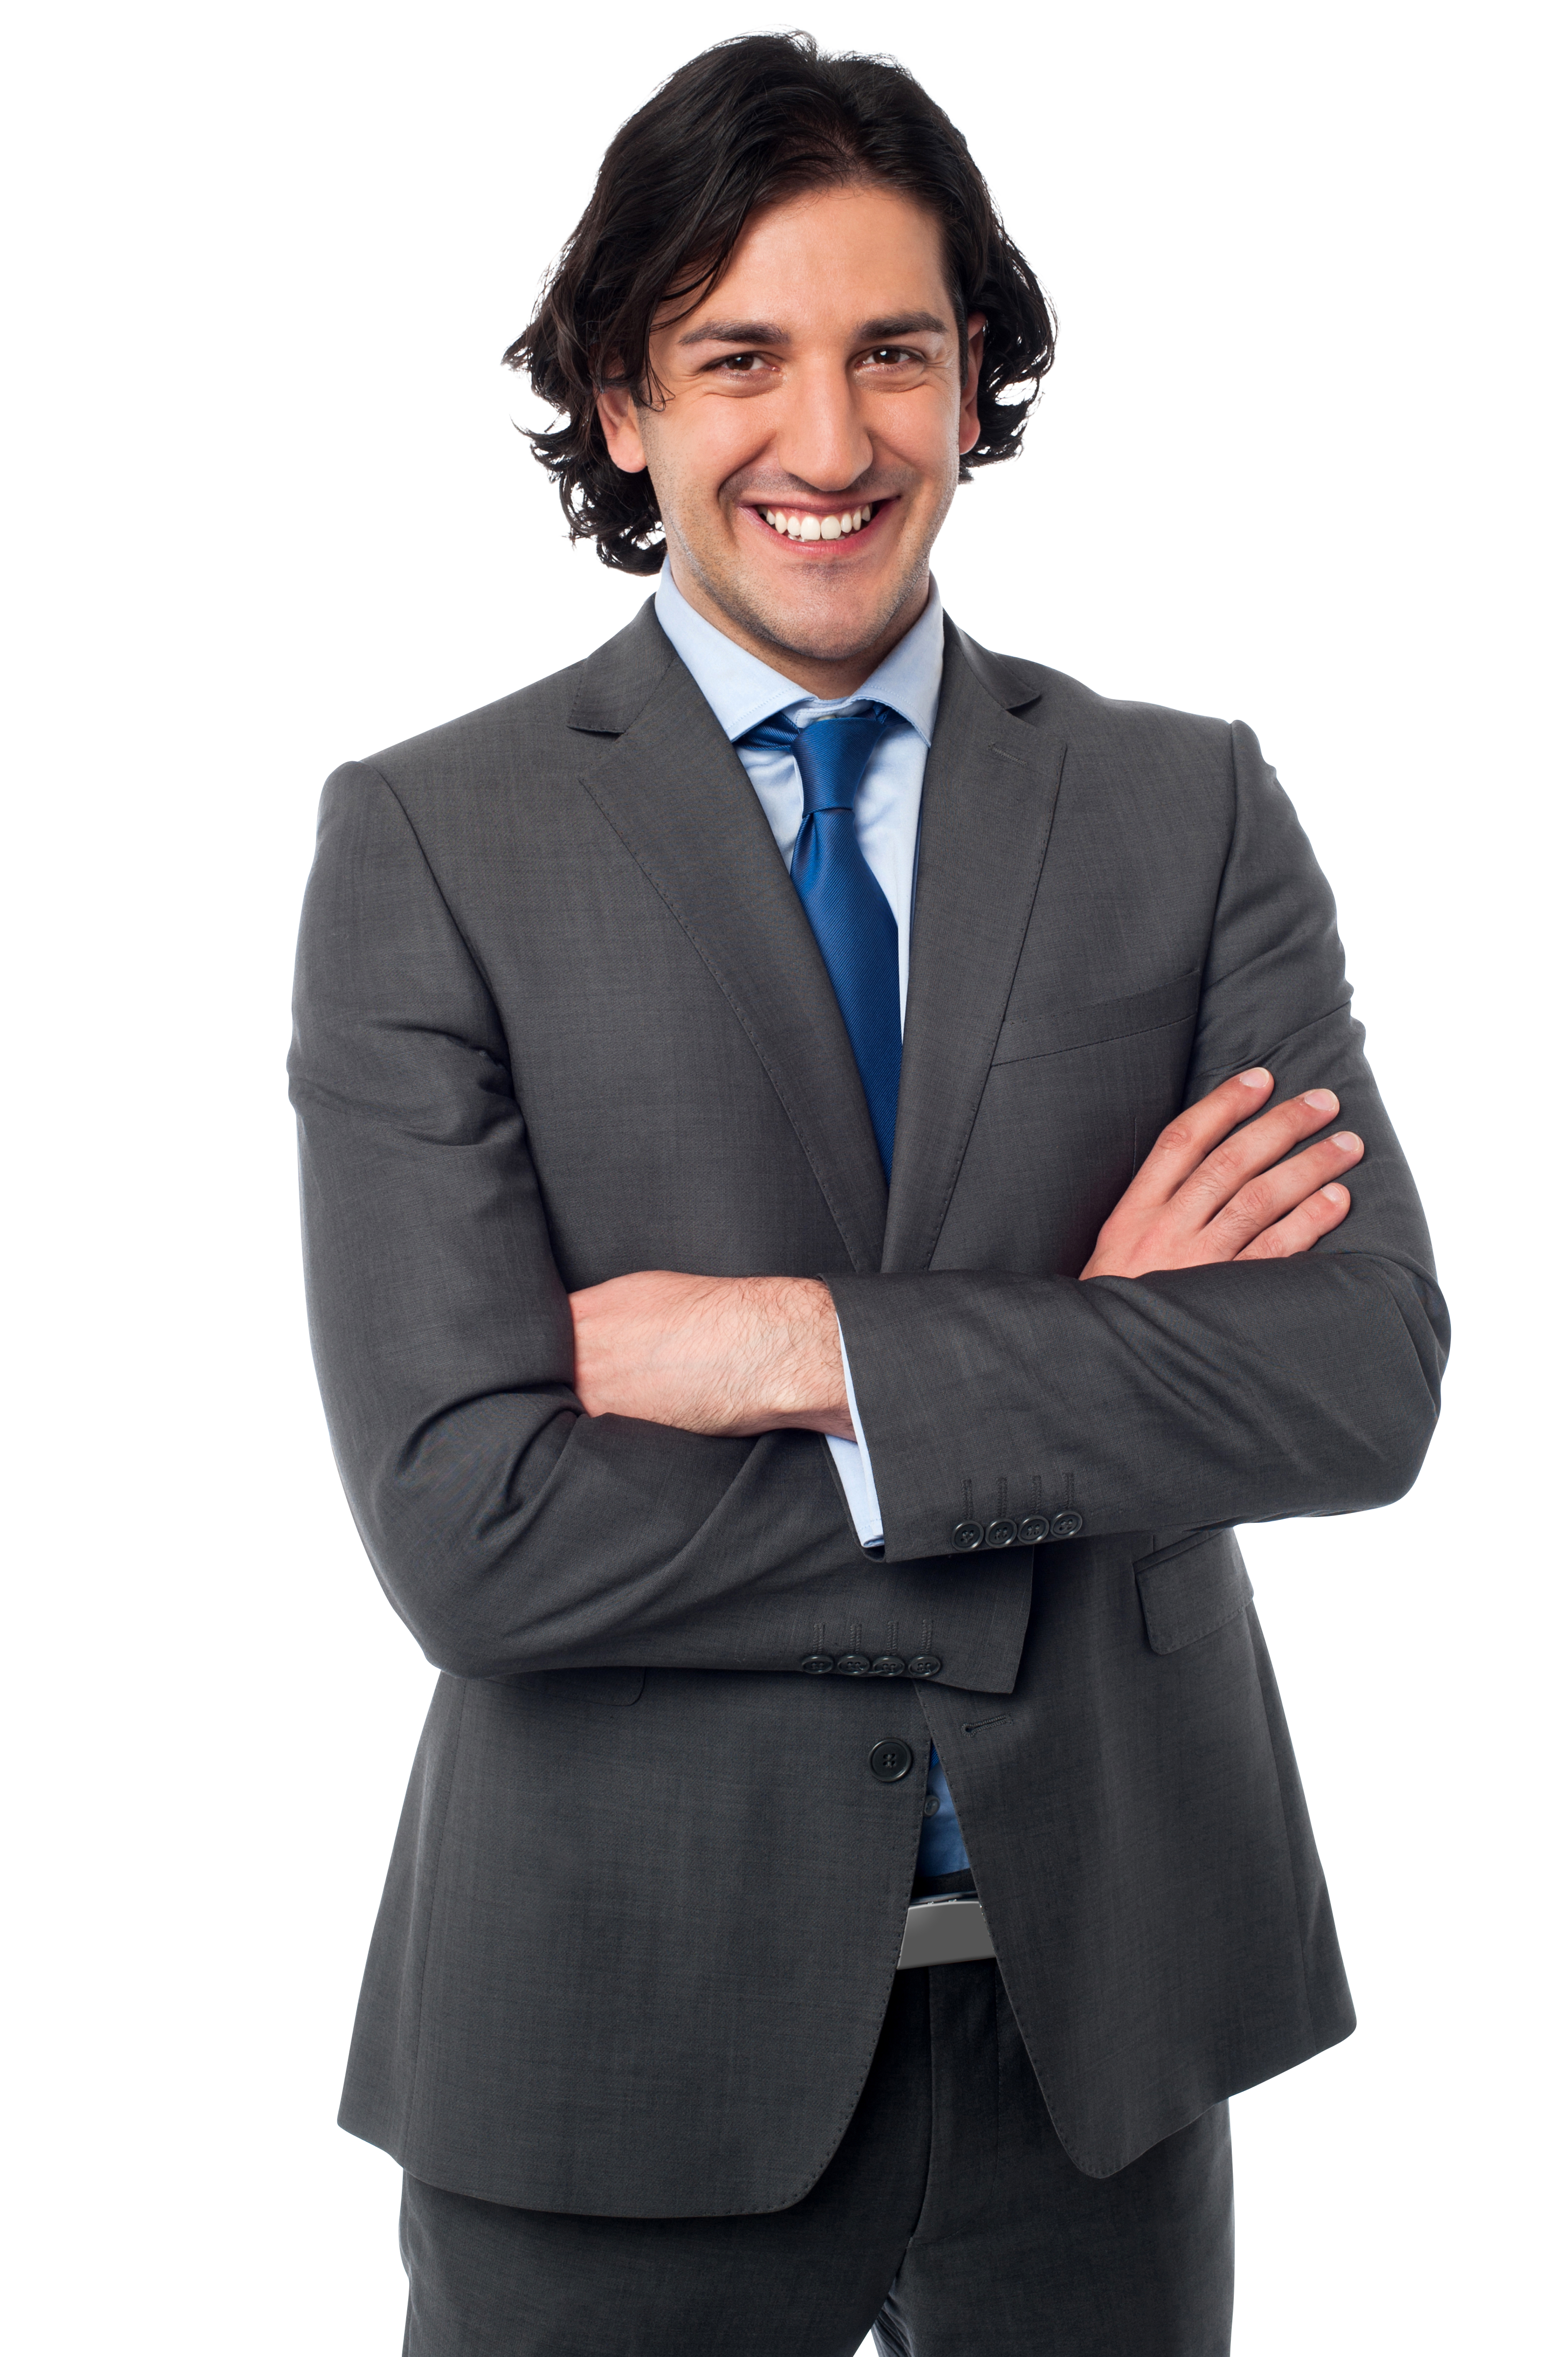 Guy In A Suit PNG - 159704